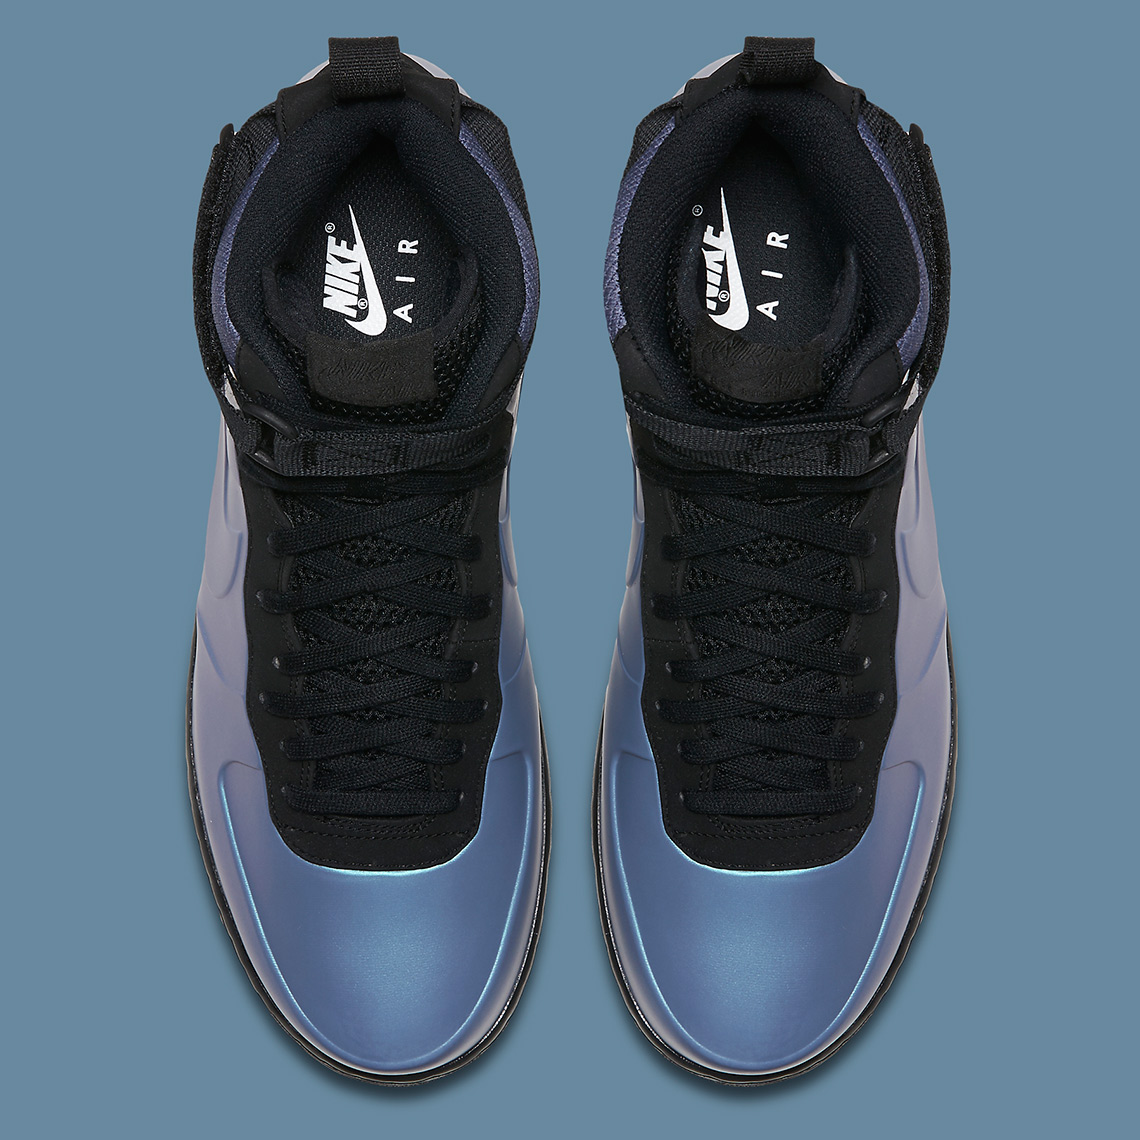 online store d8e96 0e03a The Nike Air Force 1 Foamposite Is Returning In 2018 + ...